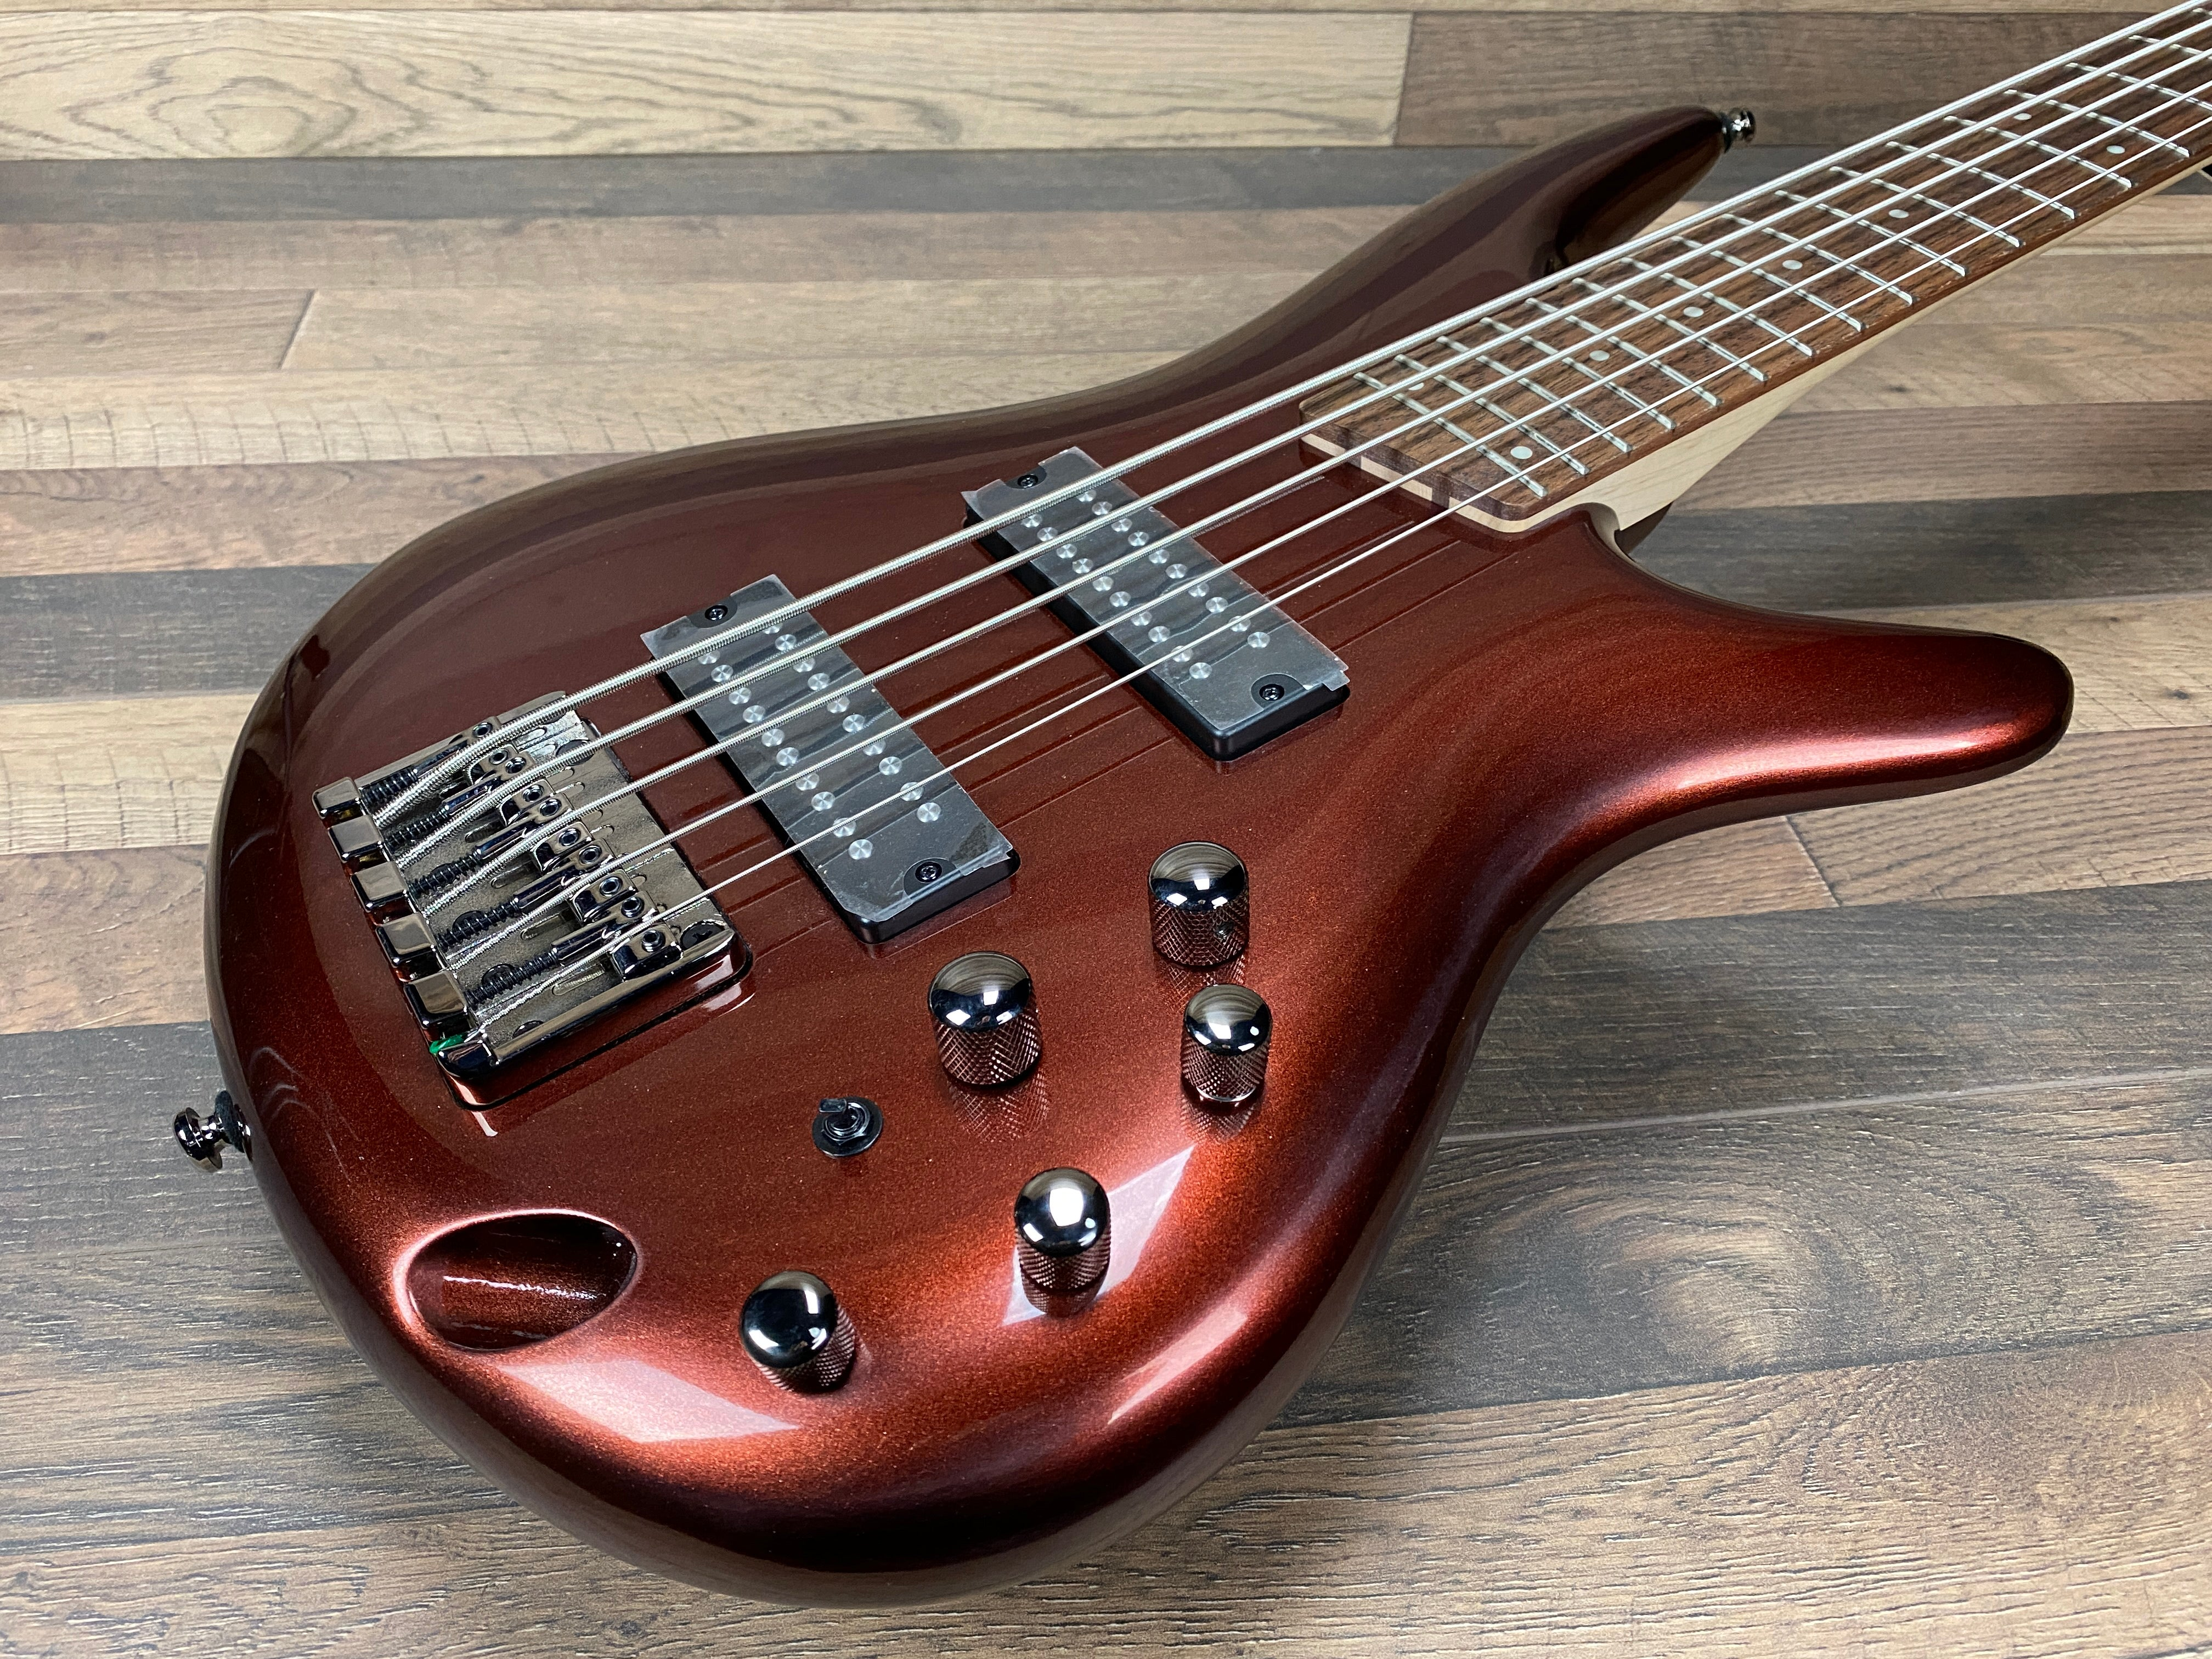 Ibanez SR305E-RBM Right-Handed 5-String Electric Bass Guitar